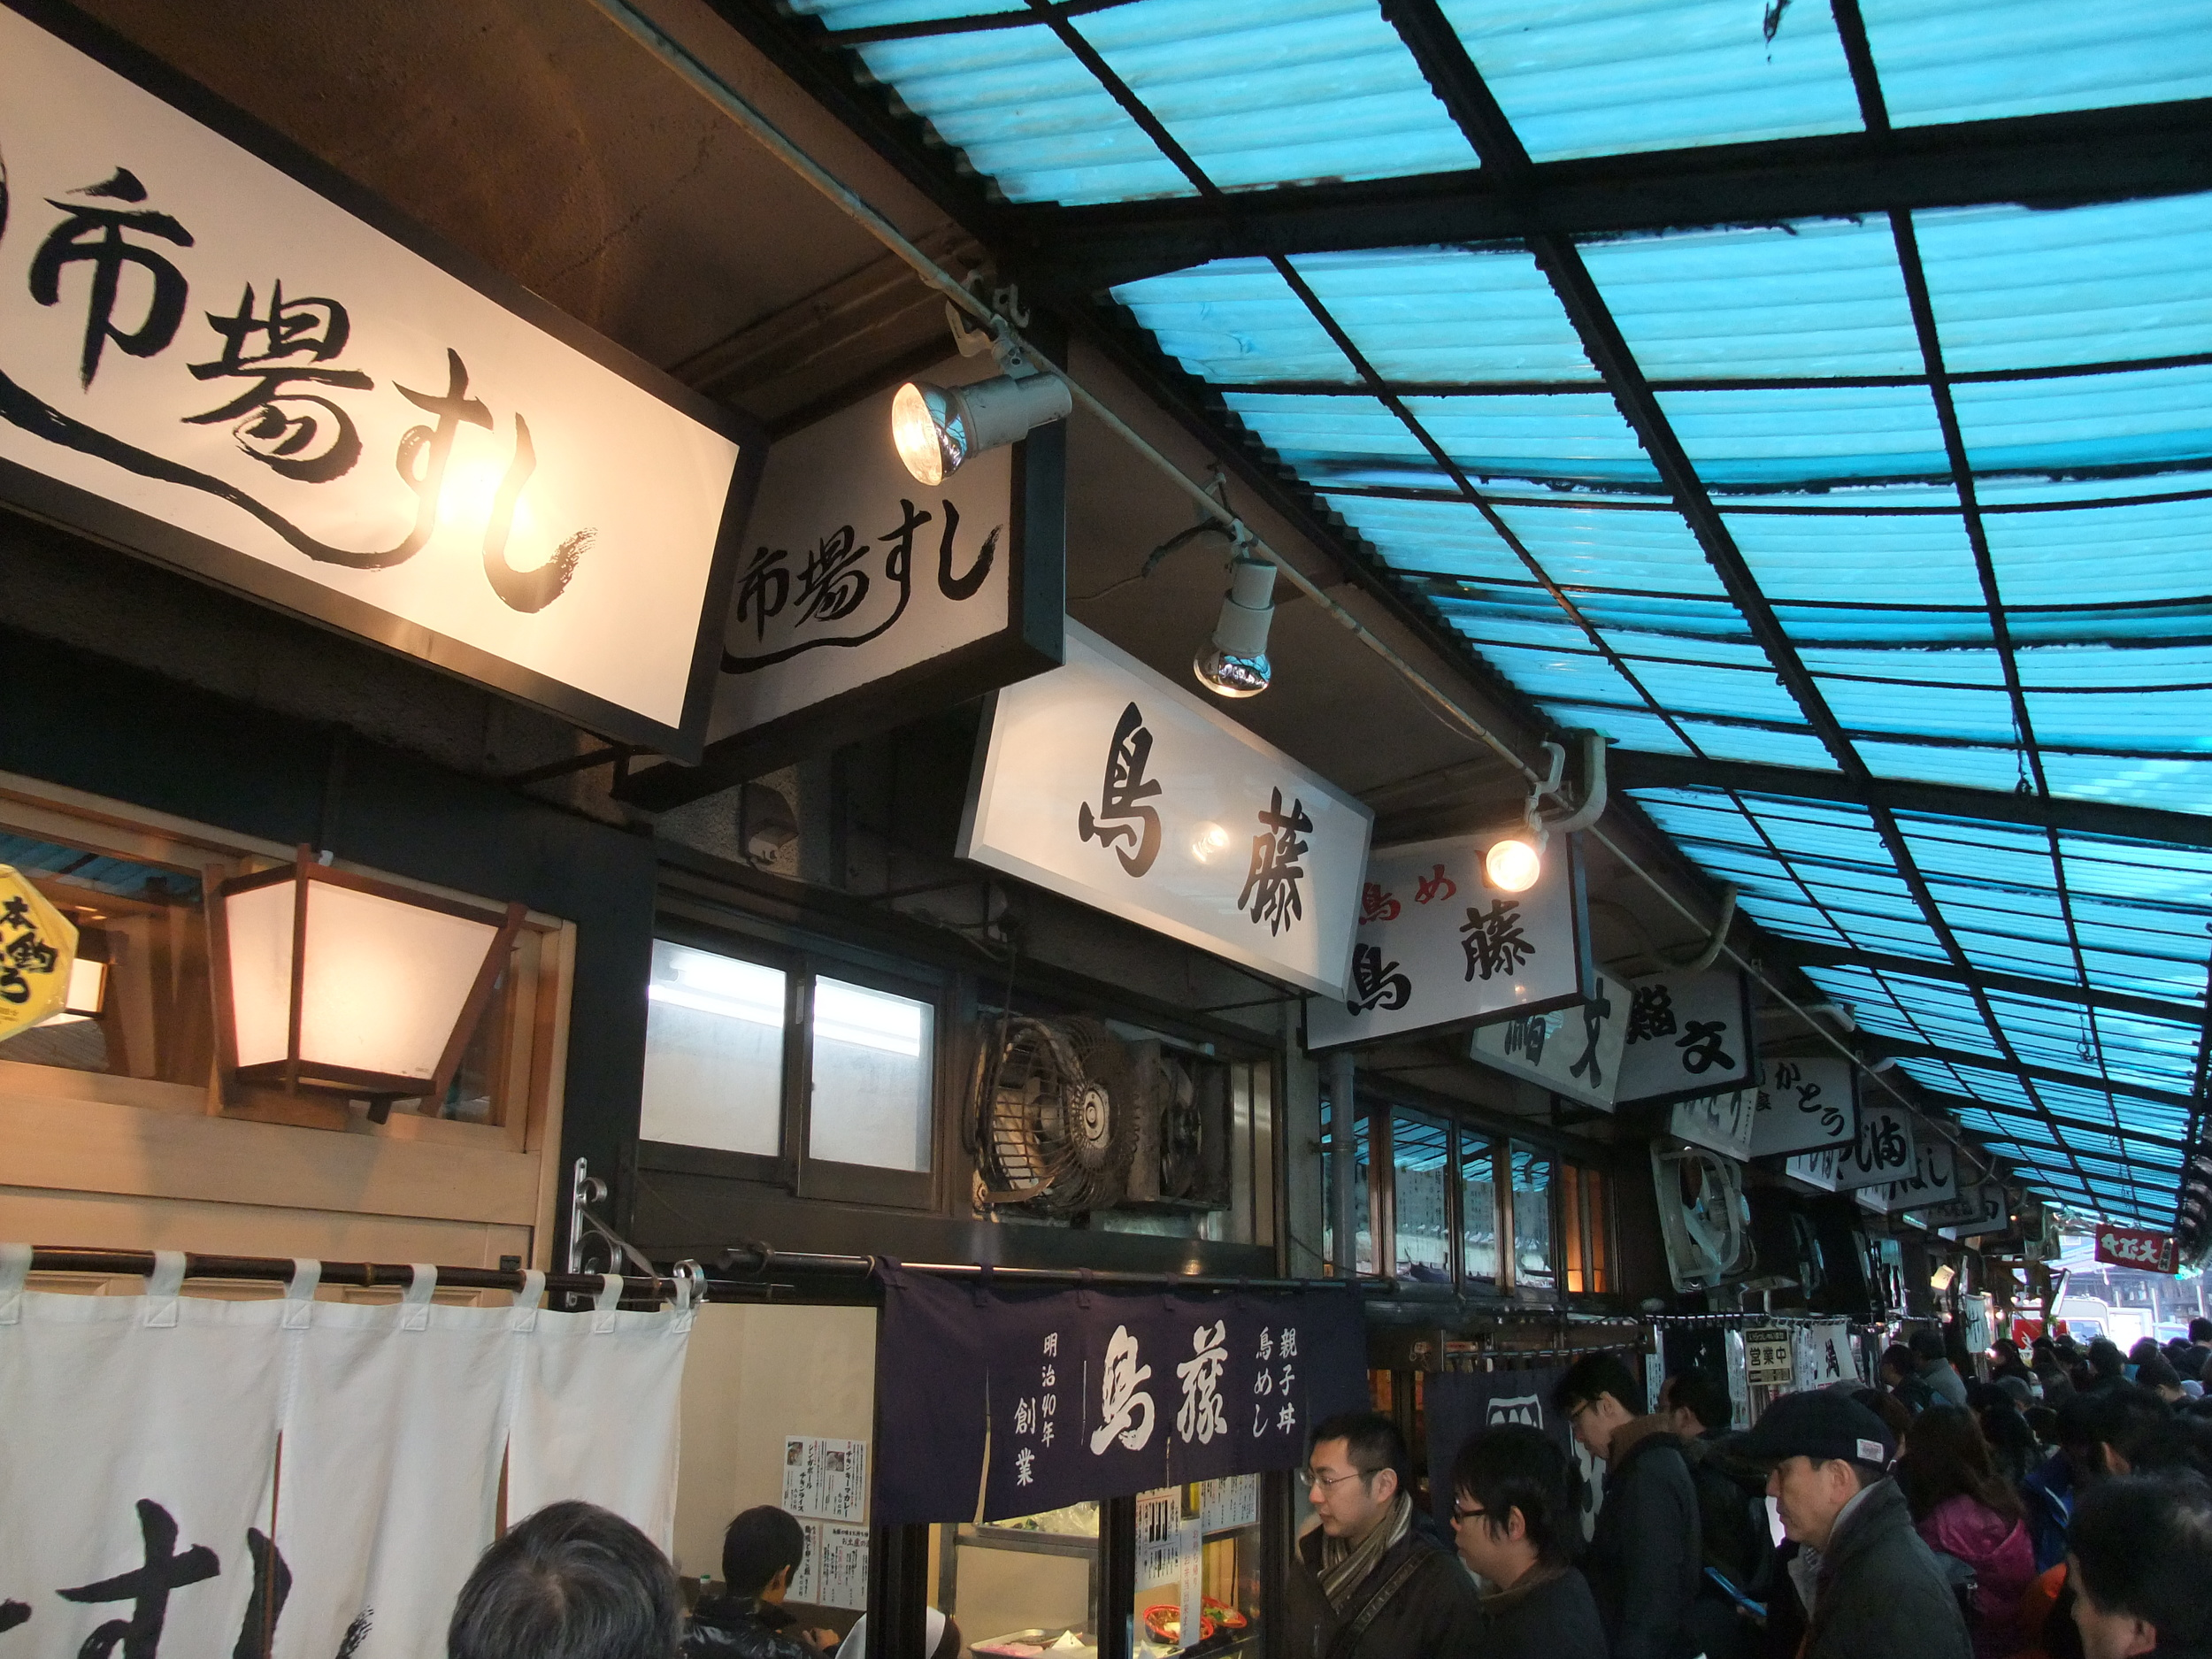 The lines to get into the sushi restaurants at the Tsukiji Fish Market.